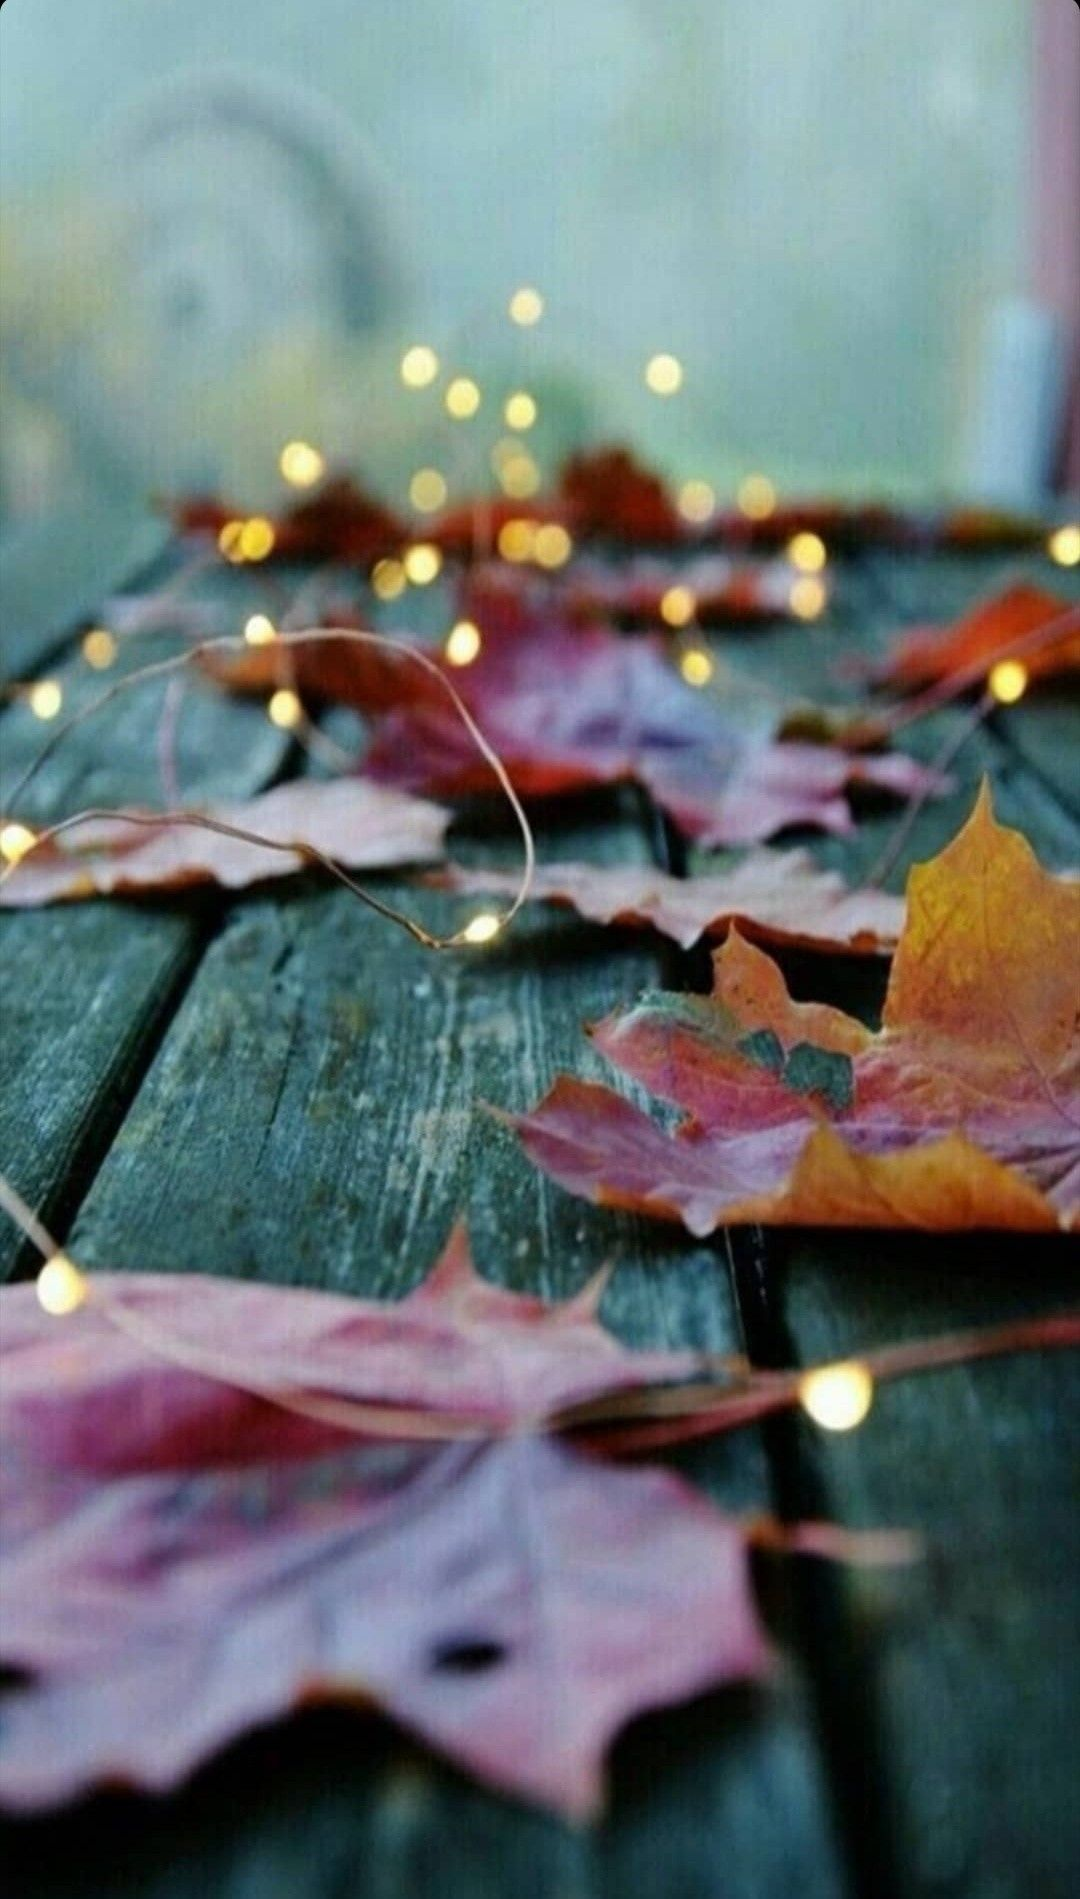 Latest The Most Beautiful Fall Season Background For Iphone 11 Iphone Wallpaper Fall Fall Wallpaper Thanksgiving Wallpaper